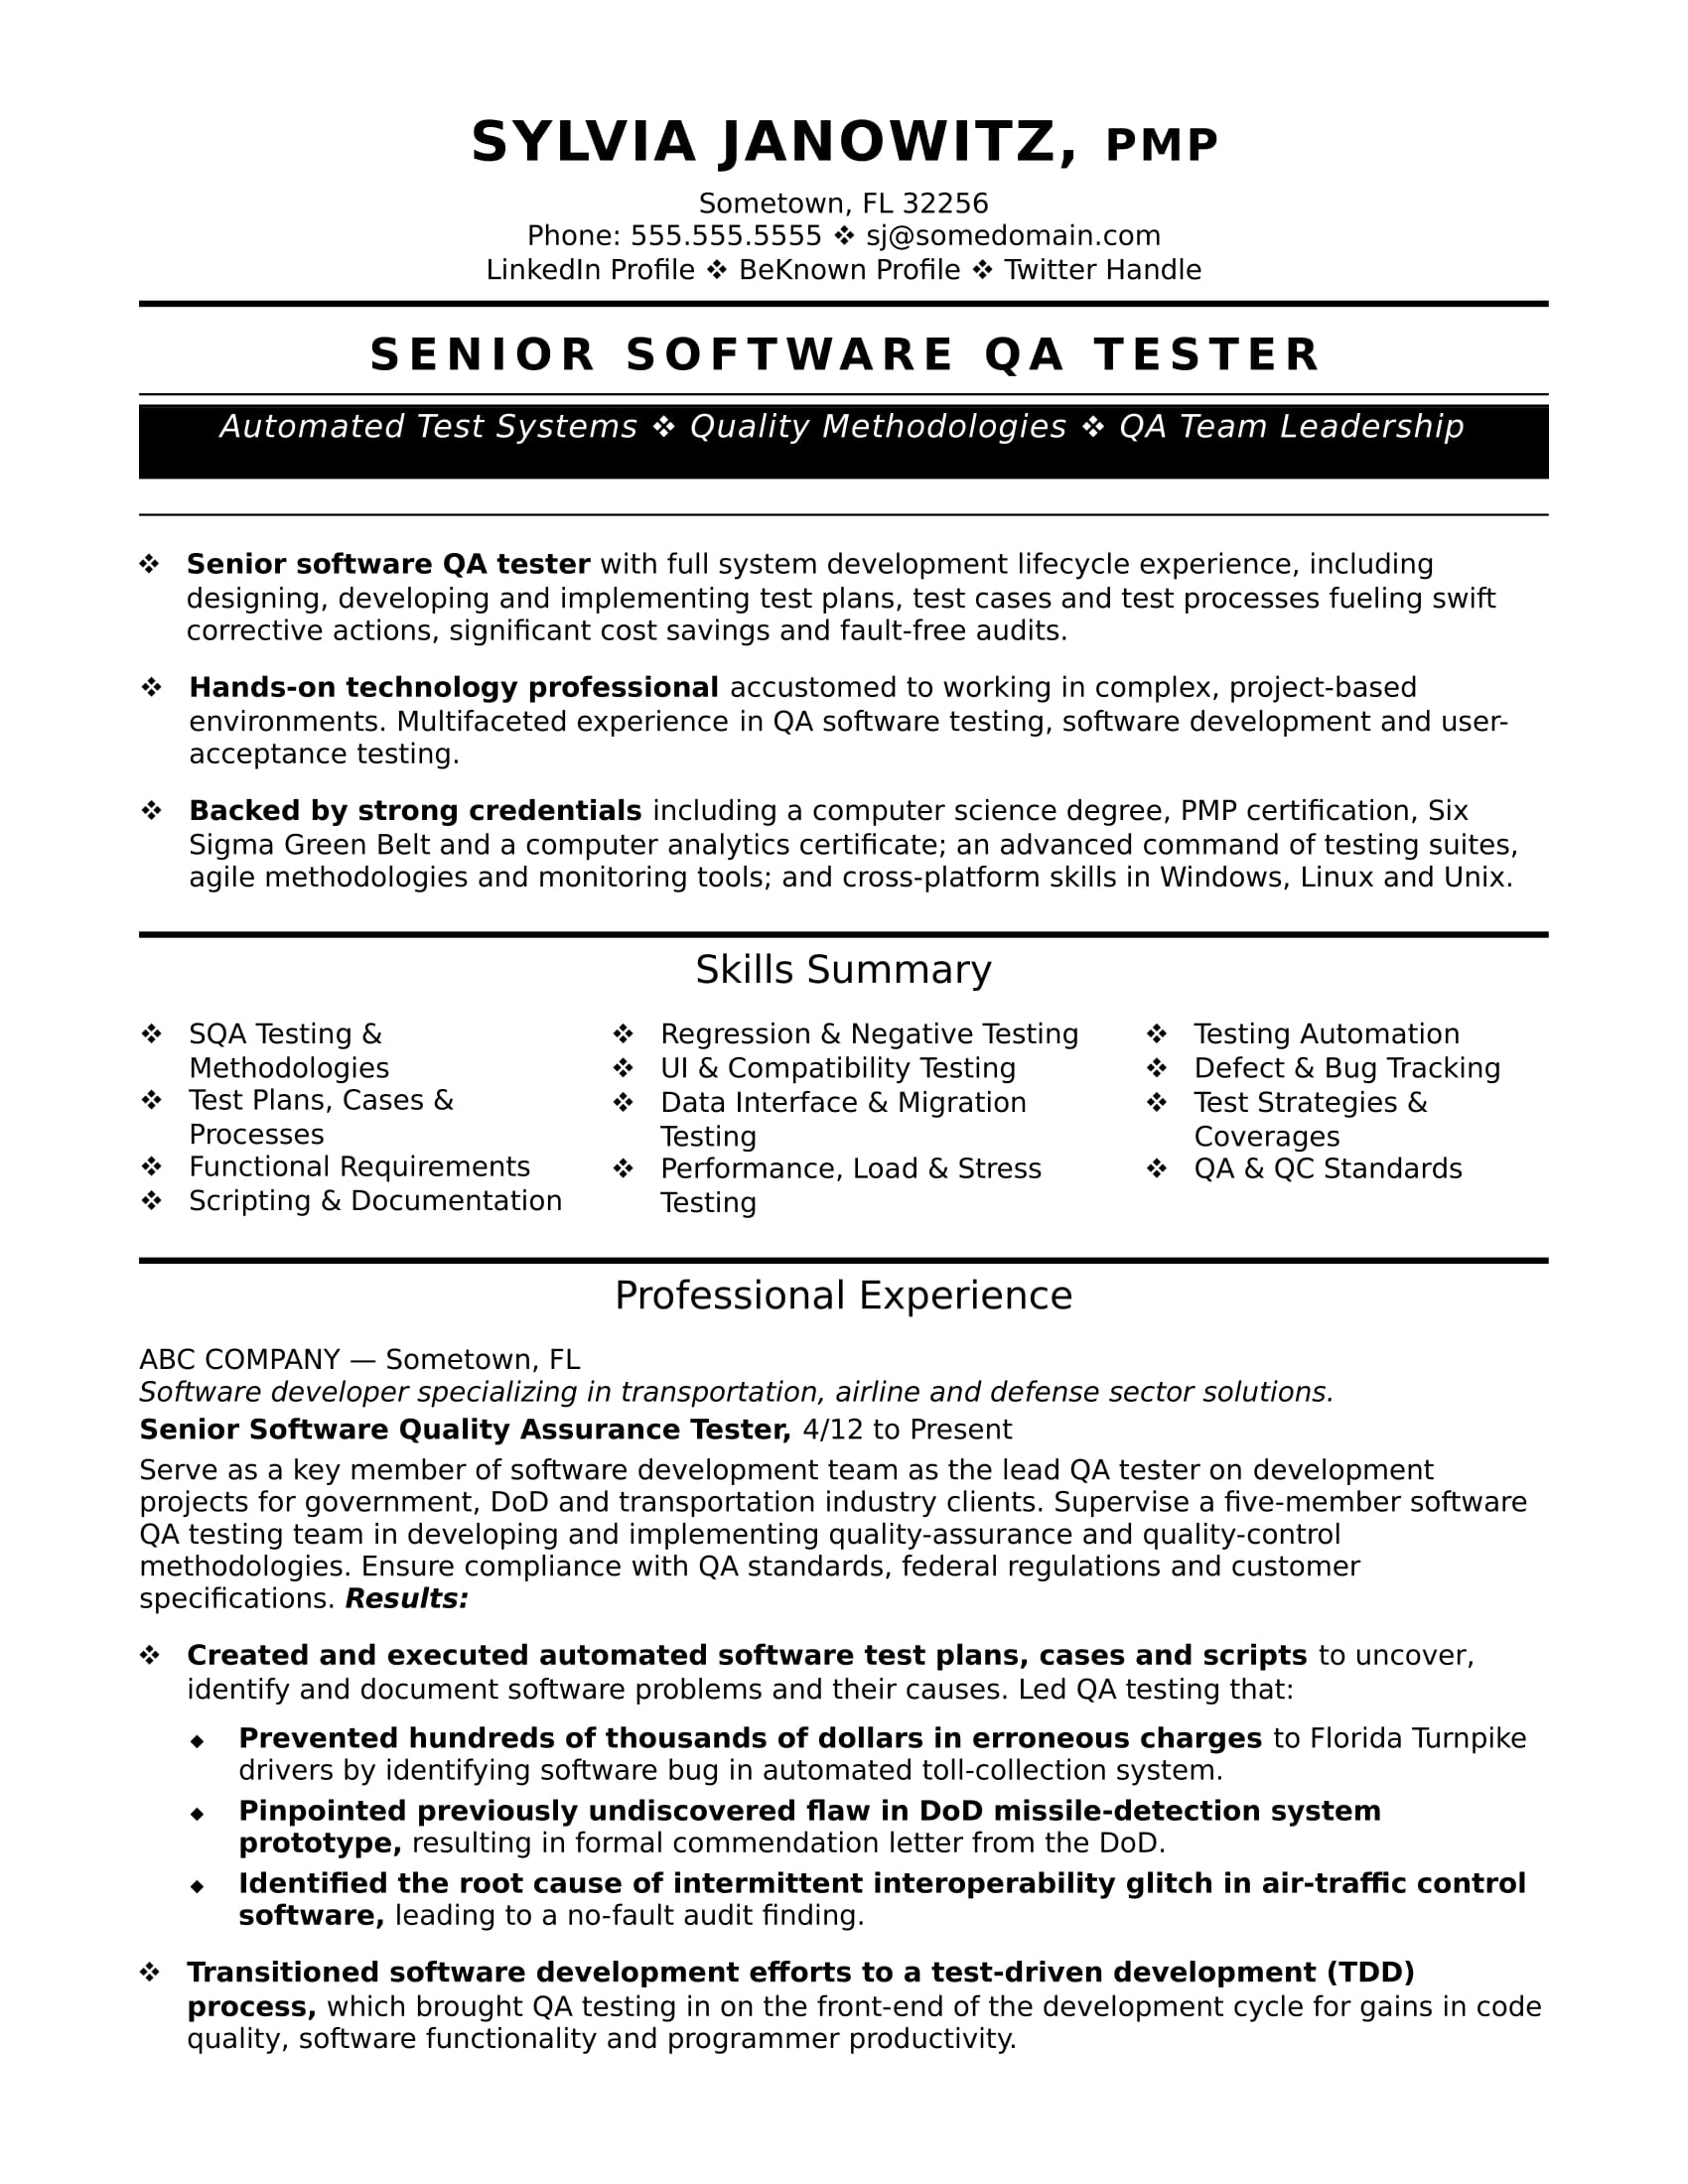 experienced qa software tester resume sample monster selenium for years experience retail Resume Selenium Resume For 8 Years Experience